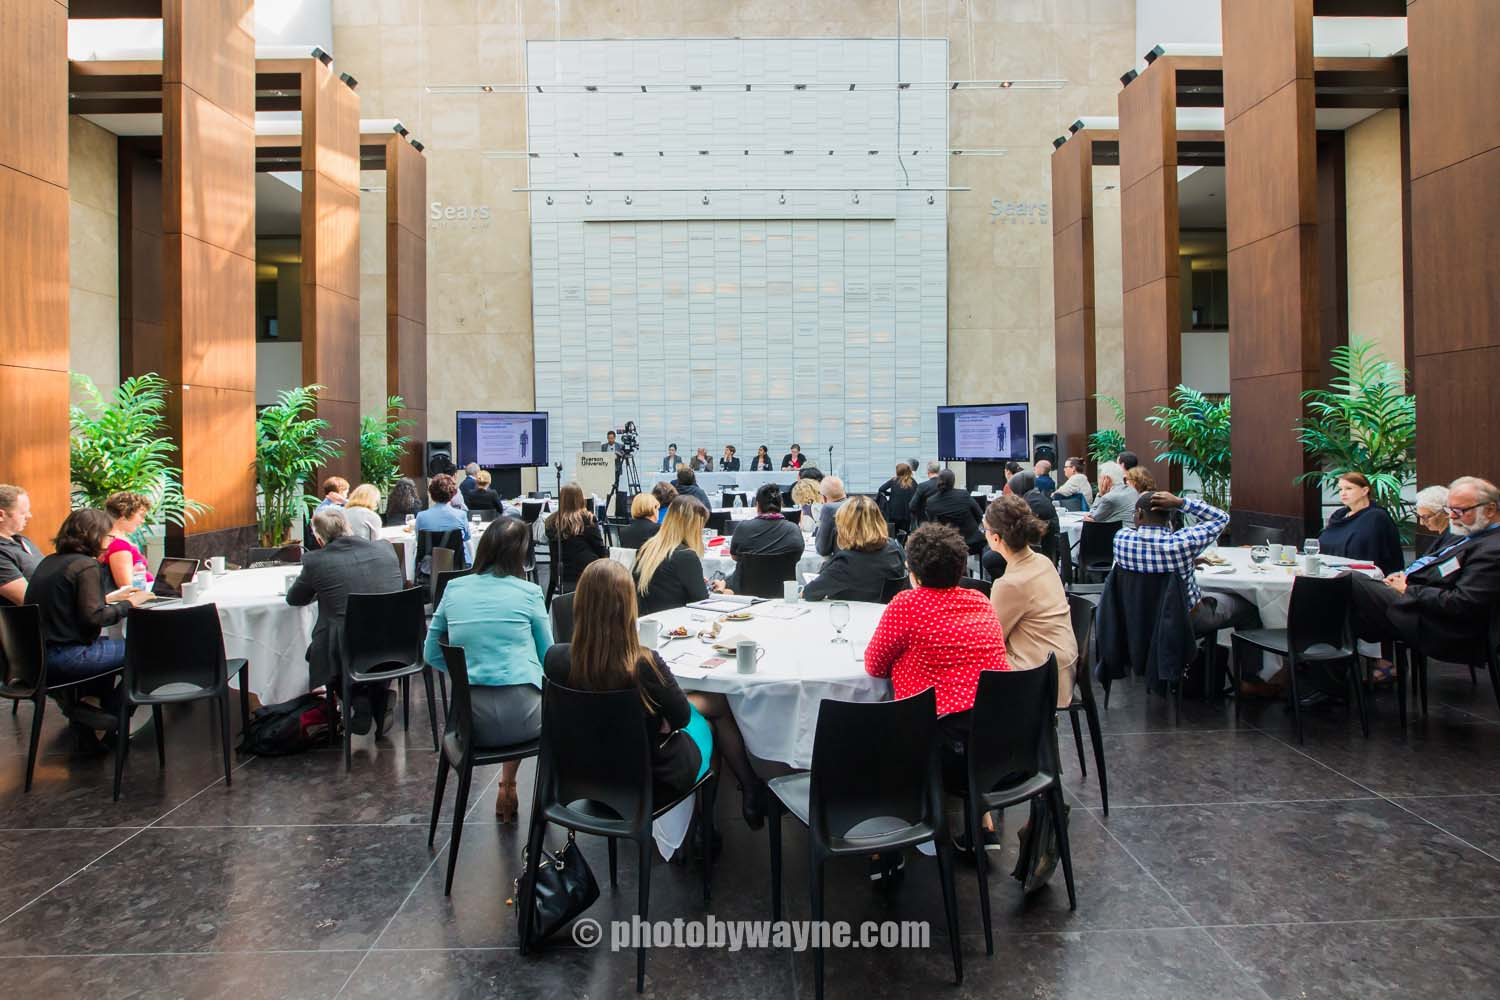 people-attending-a-business-conference-in-toronto.jpg